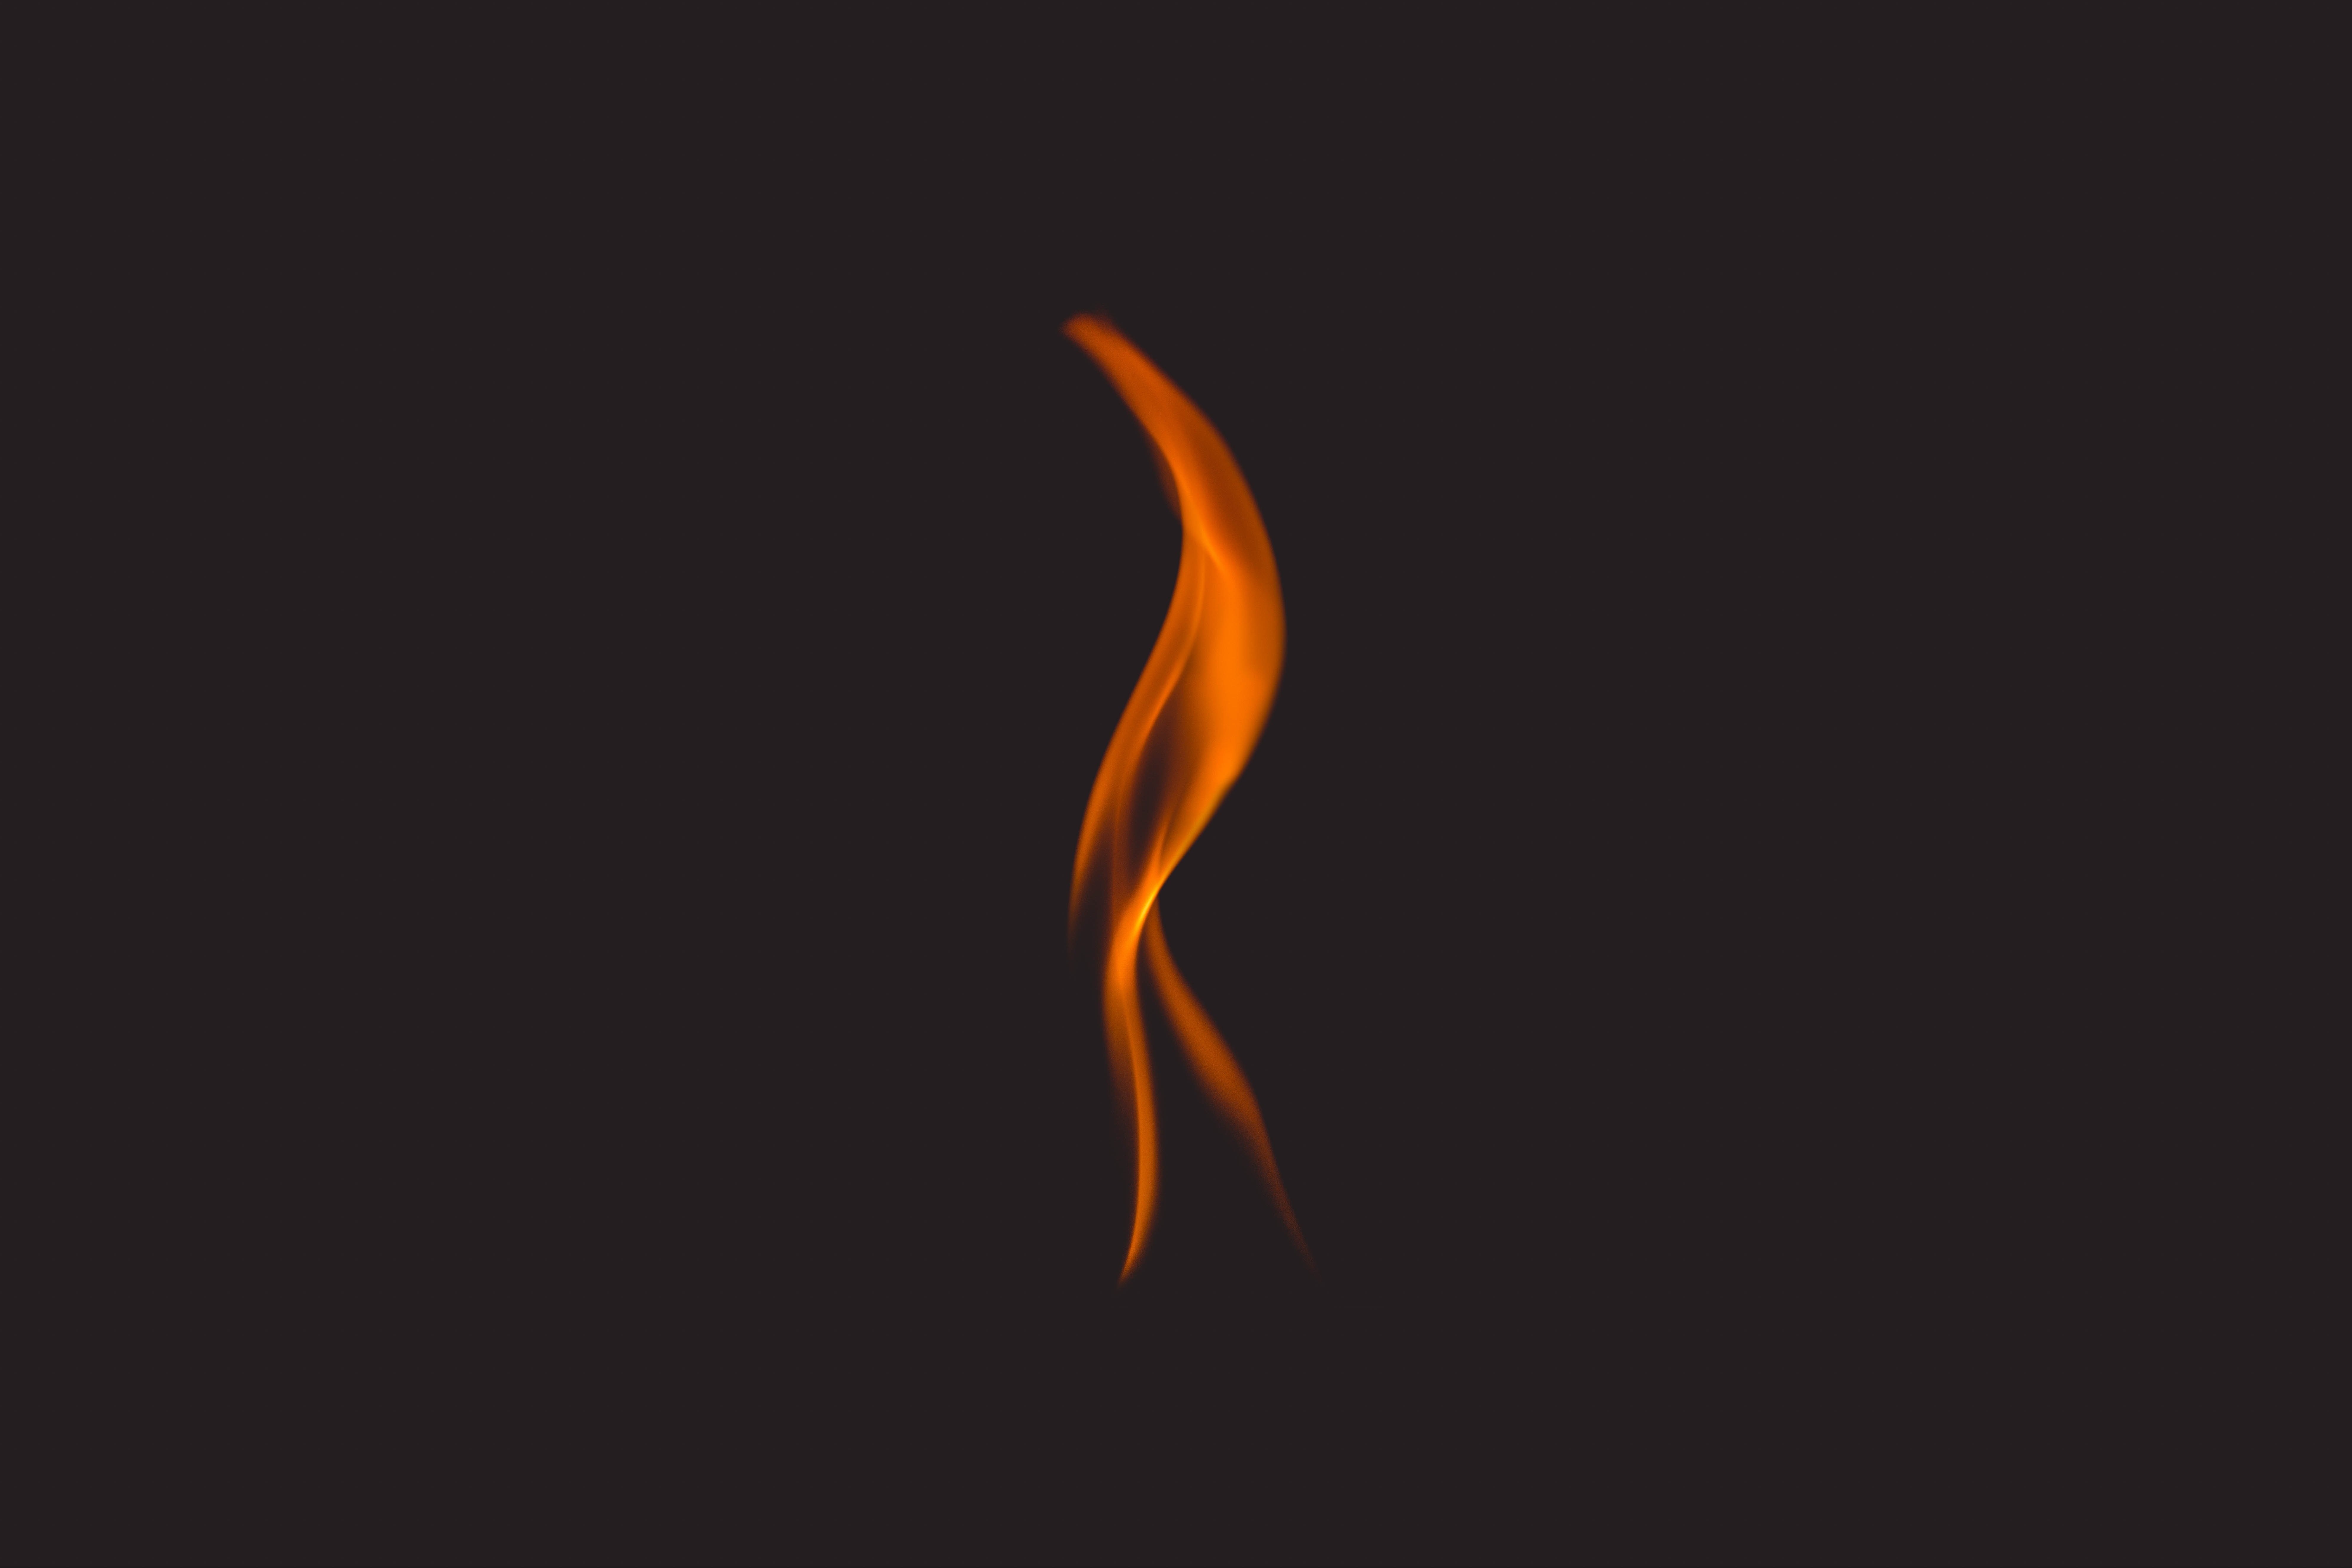 Small flame on black background